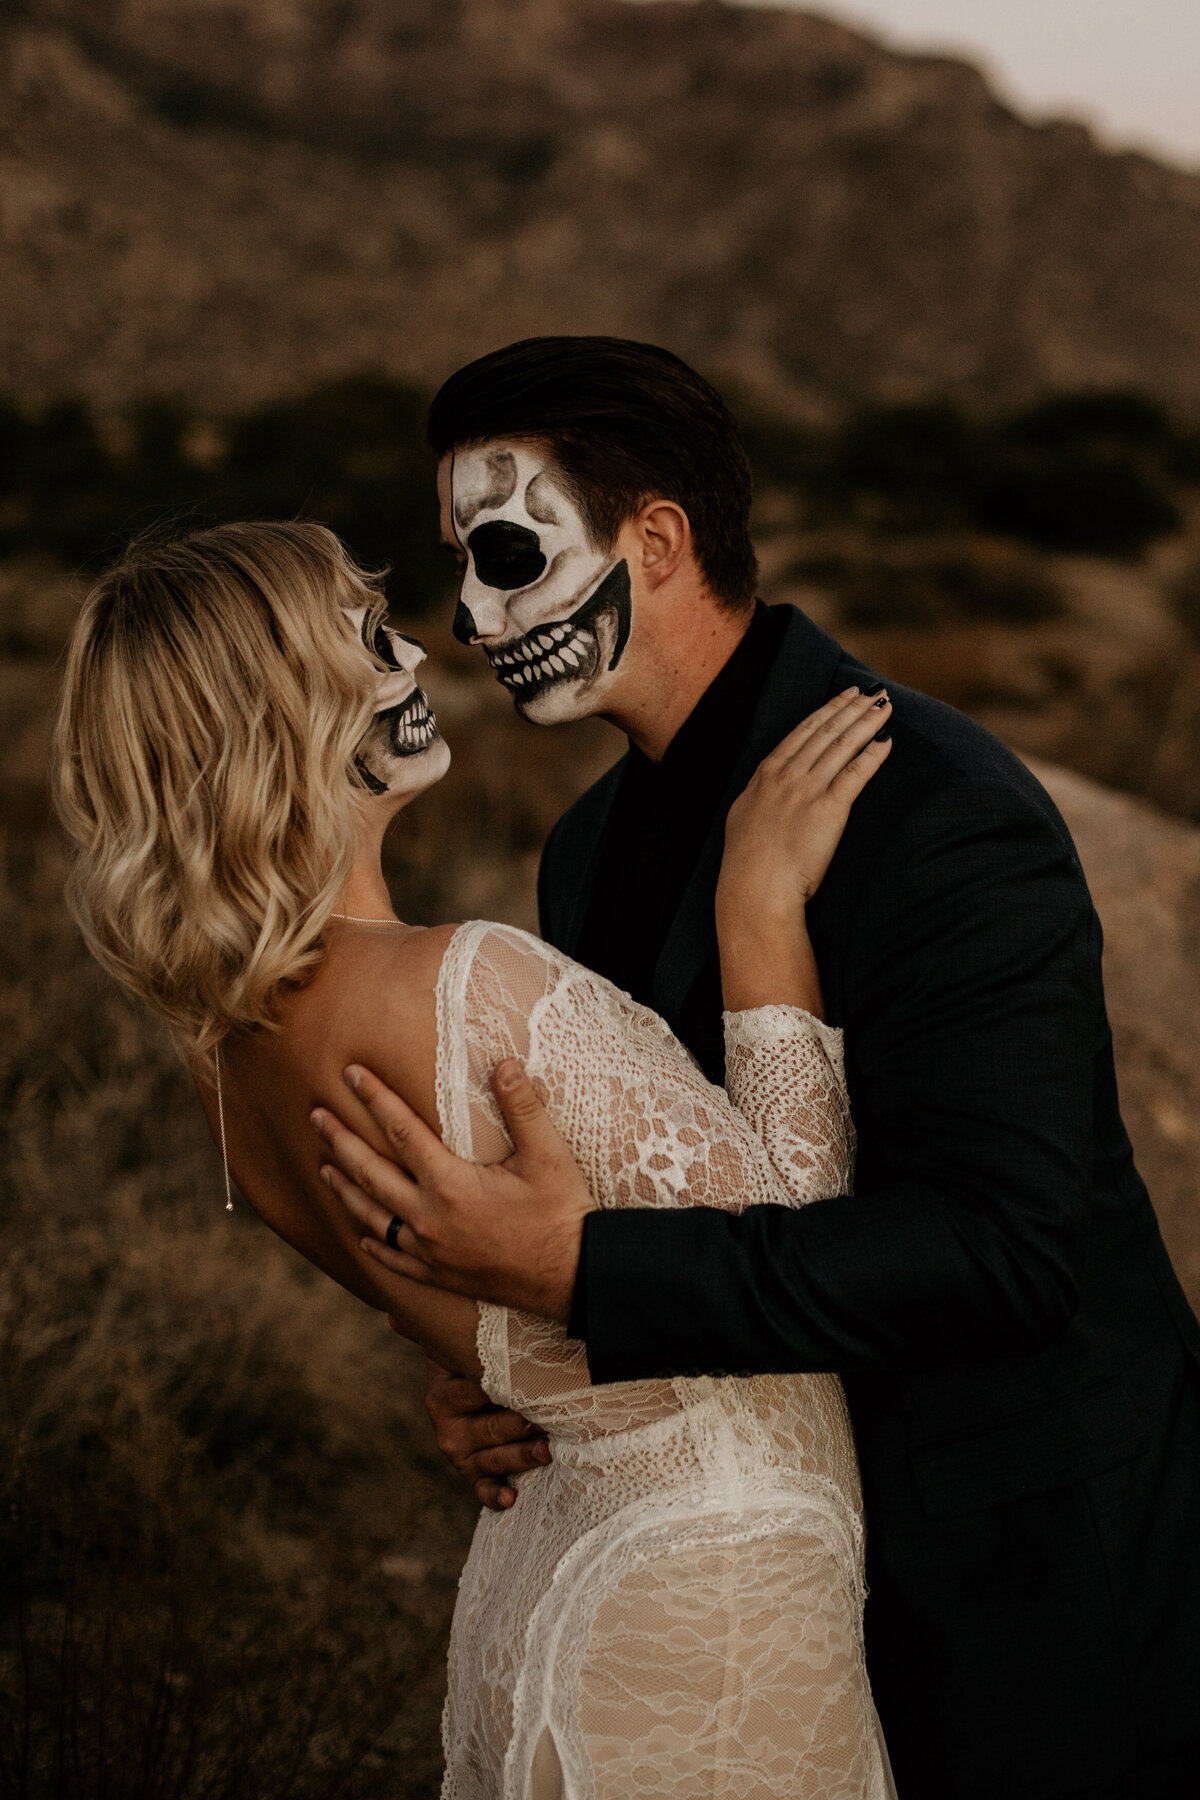 couple with skeleton makeup in wedding attire